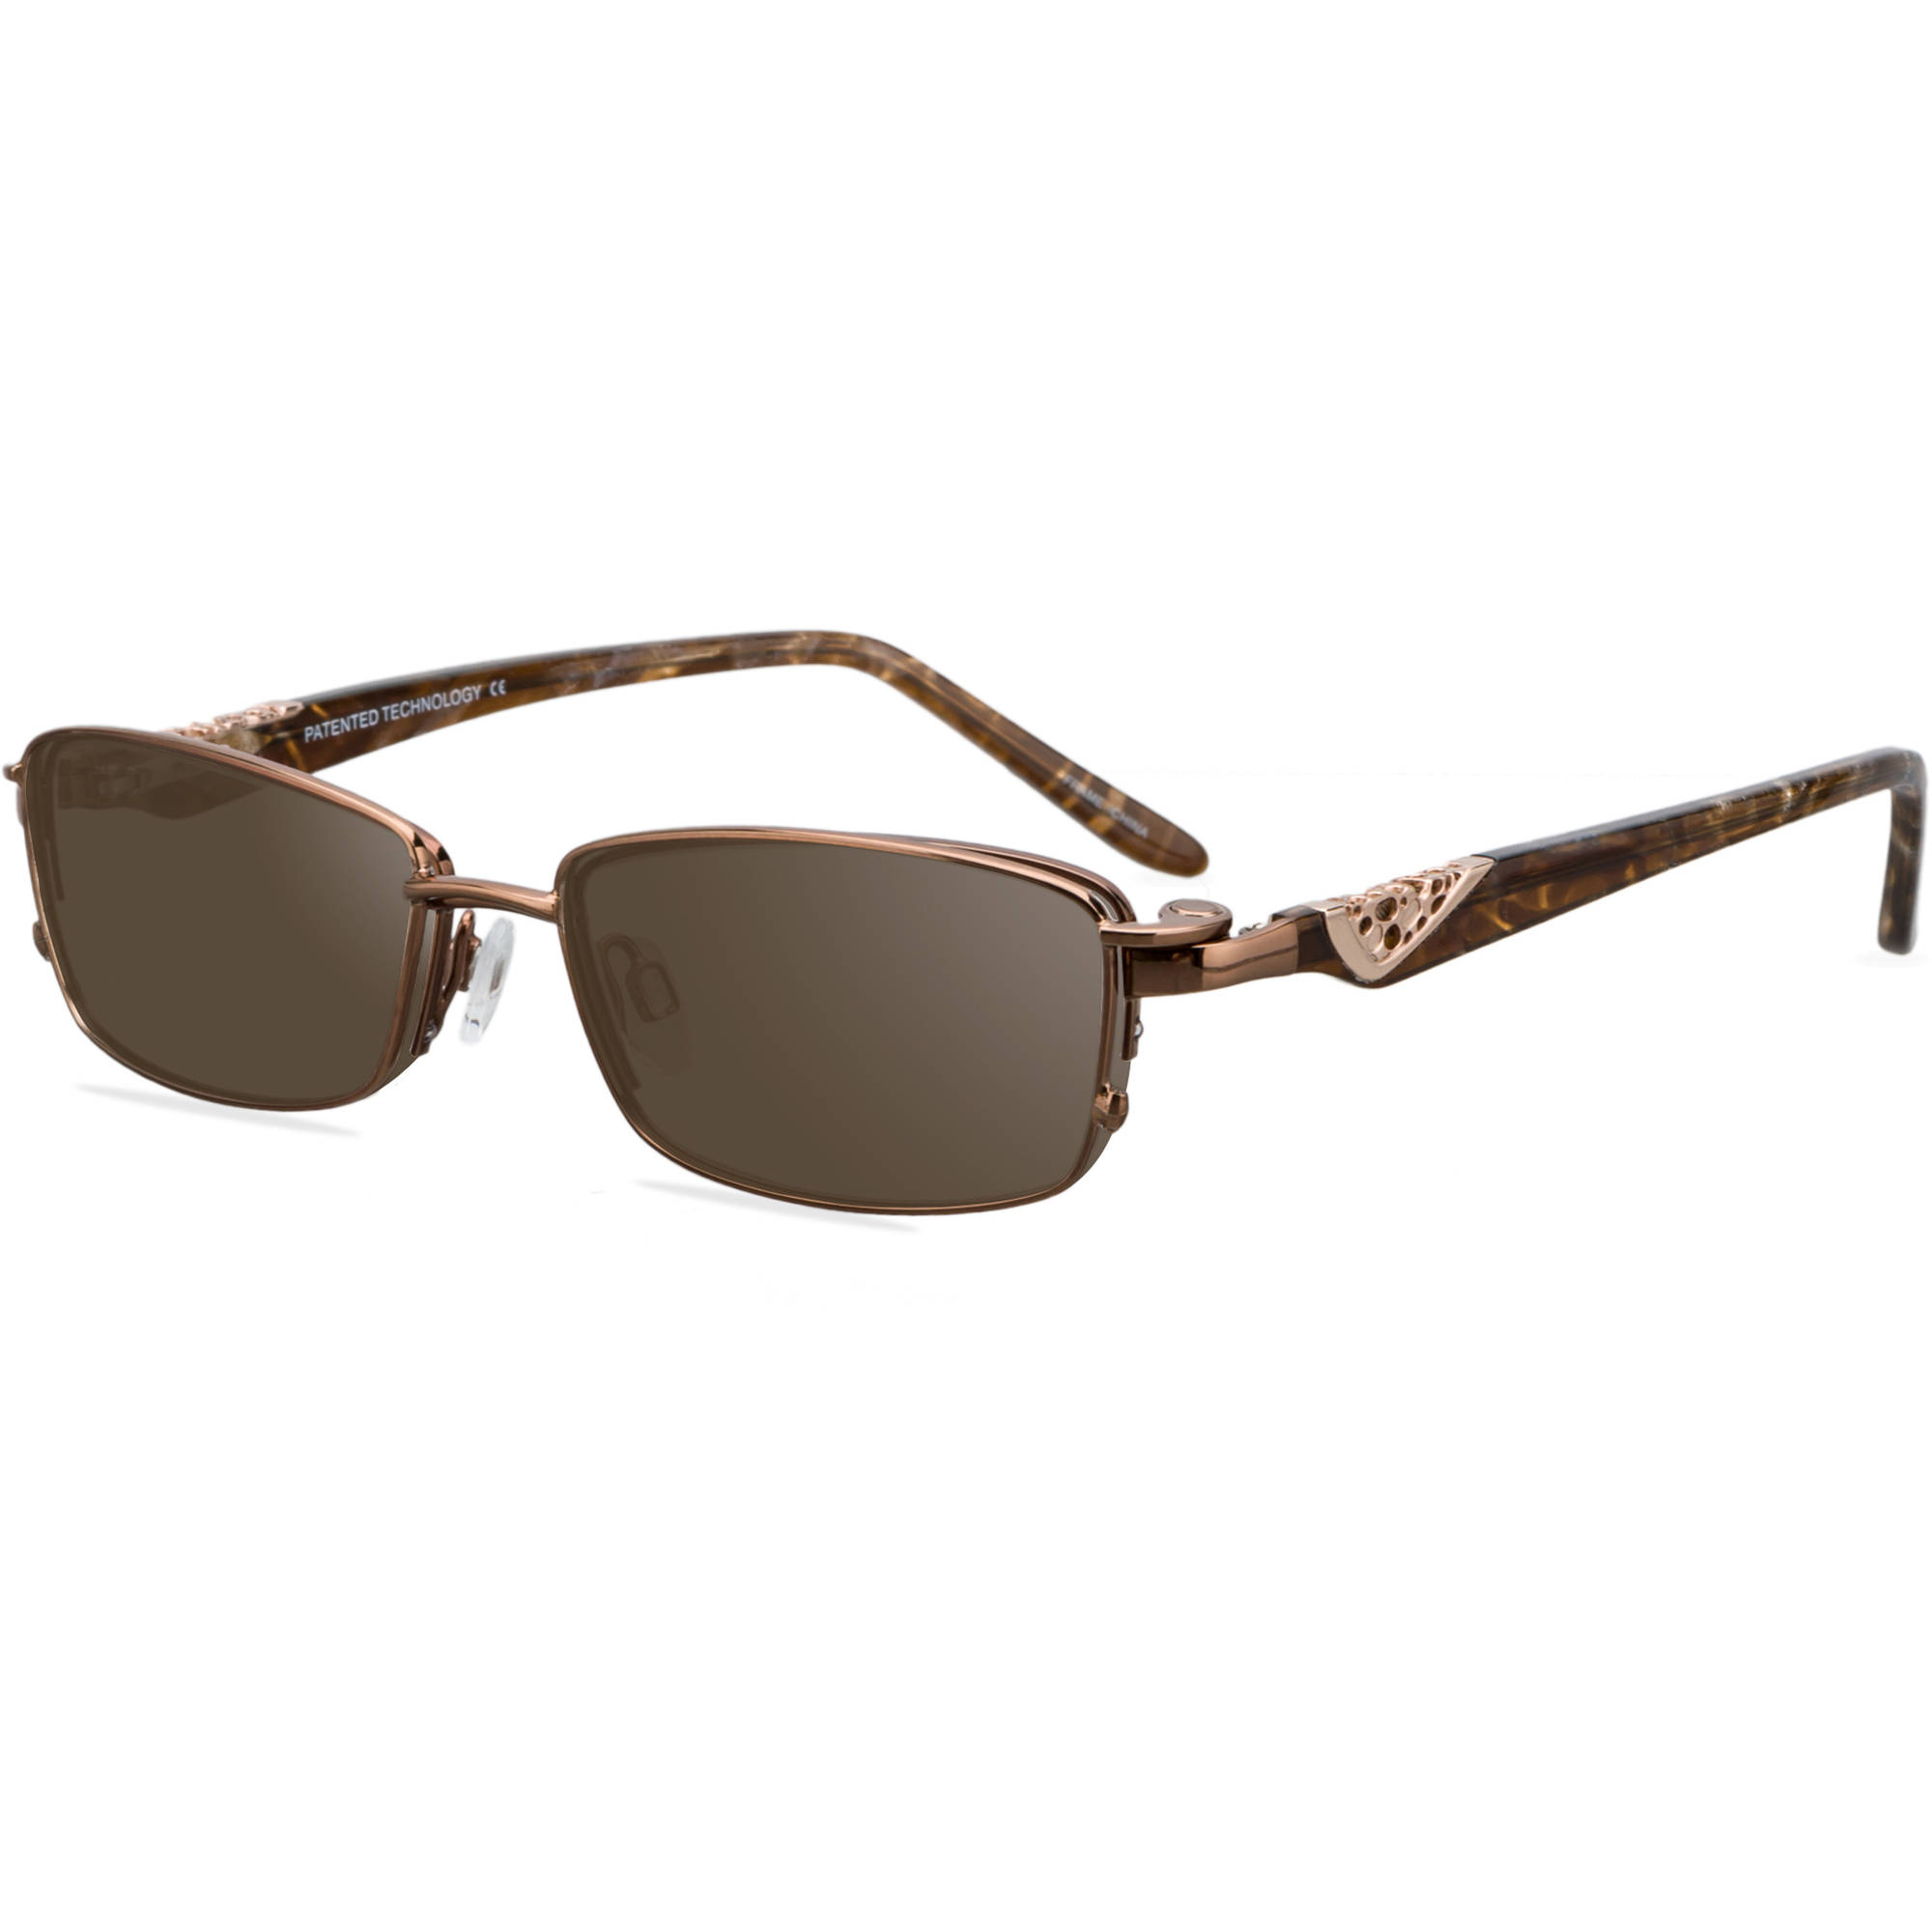 EasyClip Womens Prescription Glasses, S3208 Brown